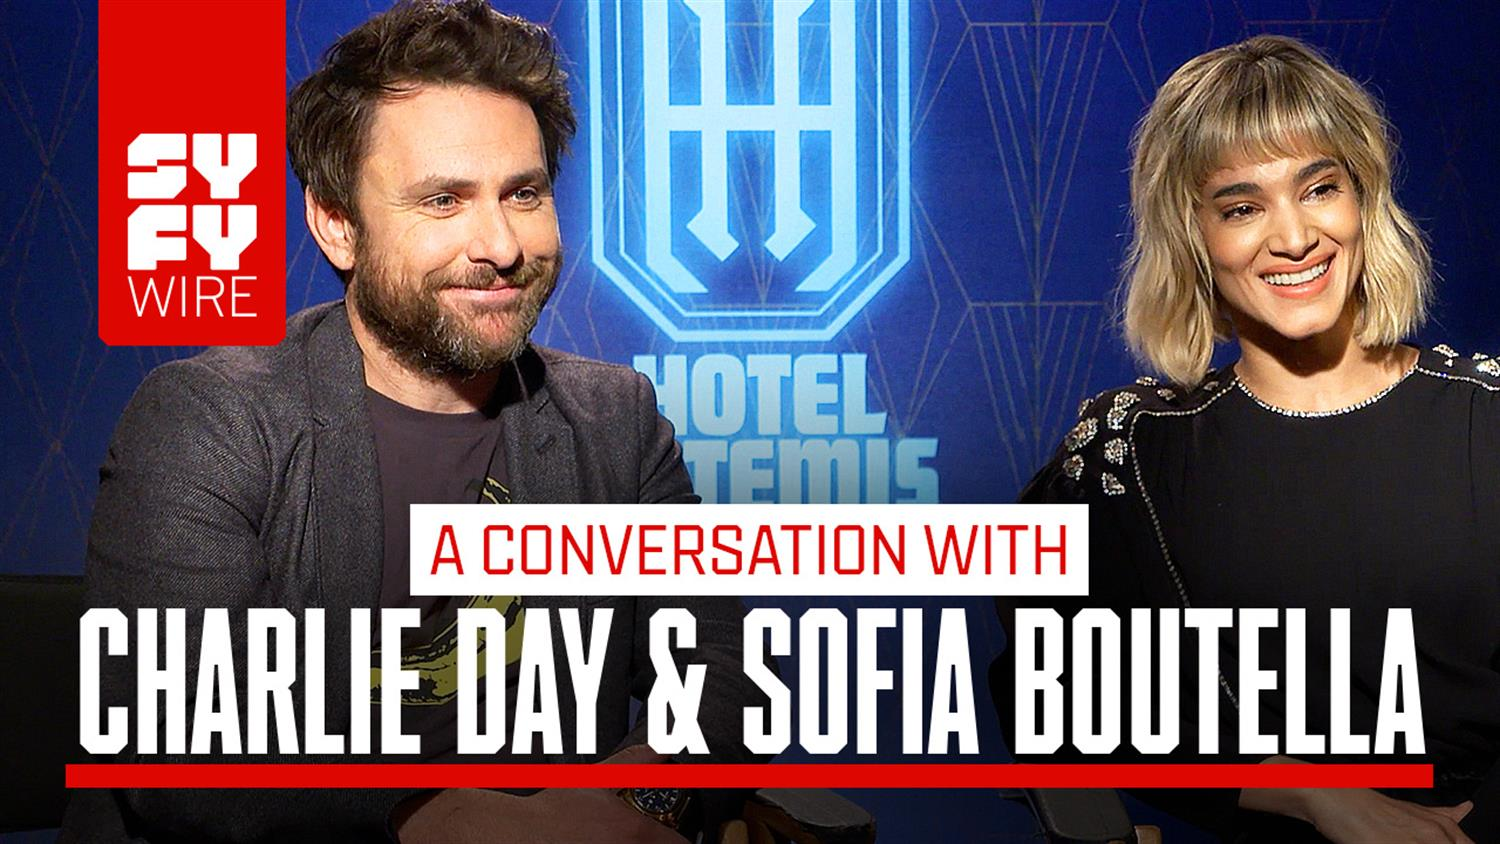 Hotel Artemis: Sofia Boutella and Charlie Day Interview